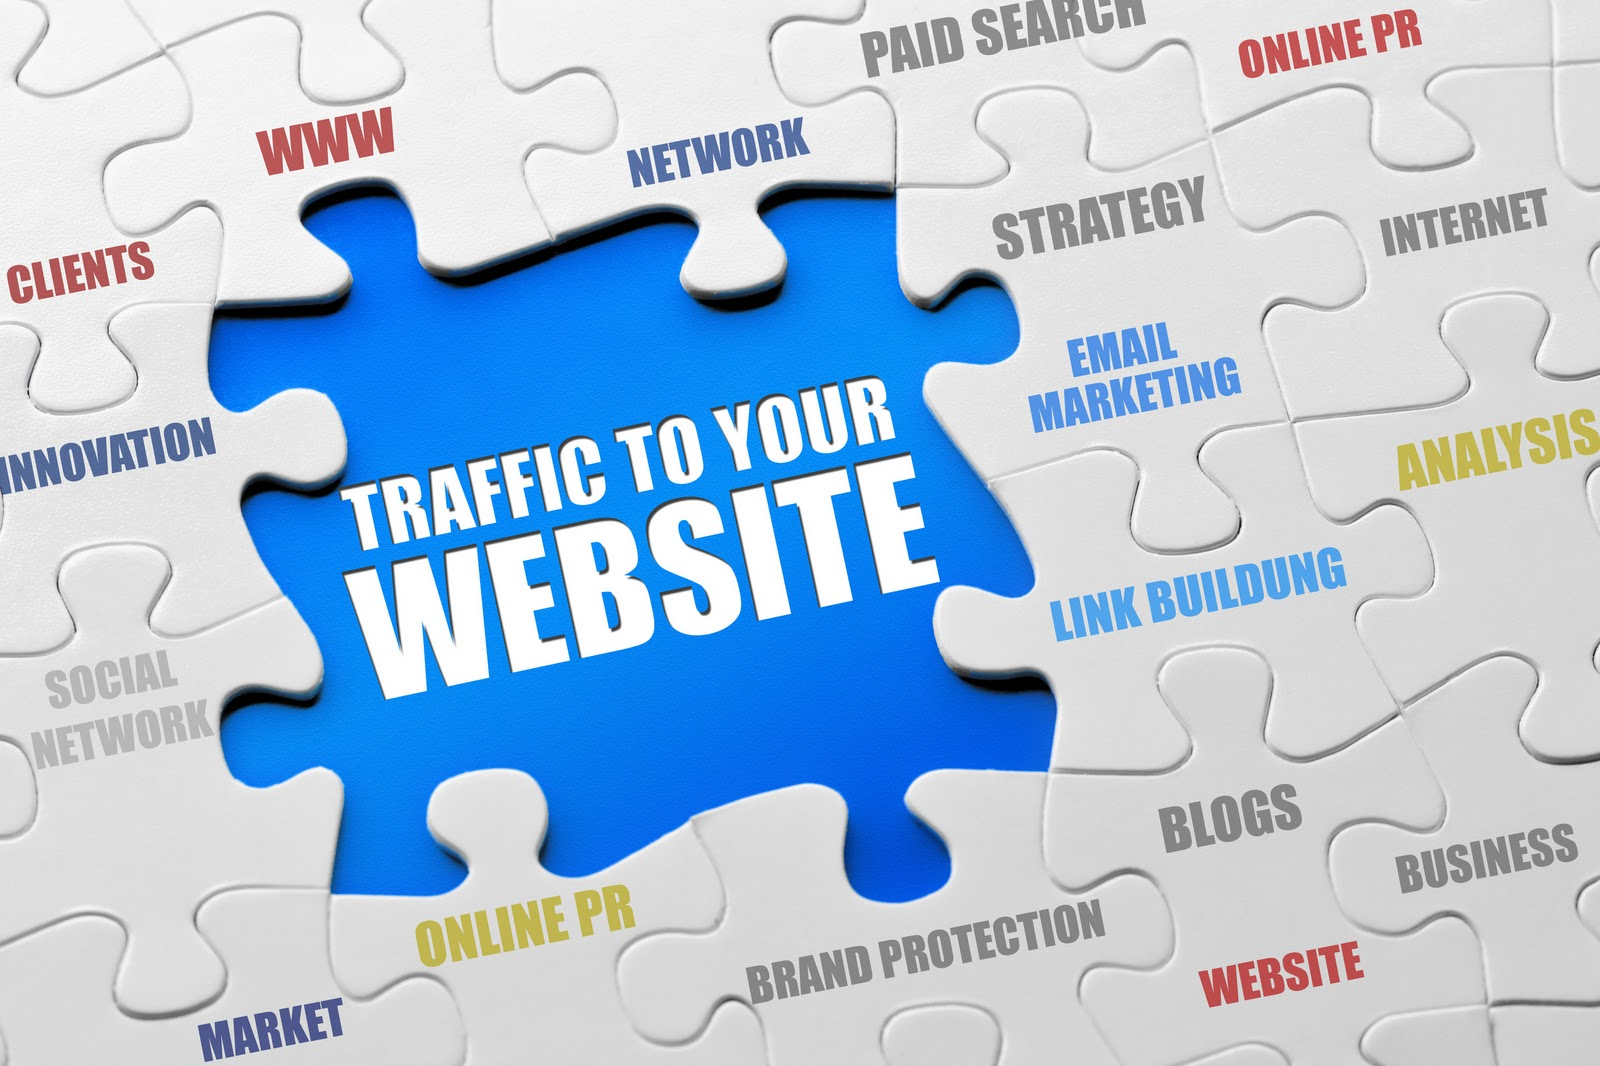 Boost Traffic to Your Website